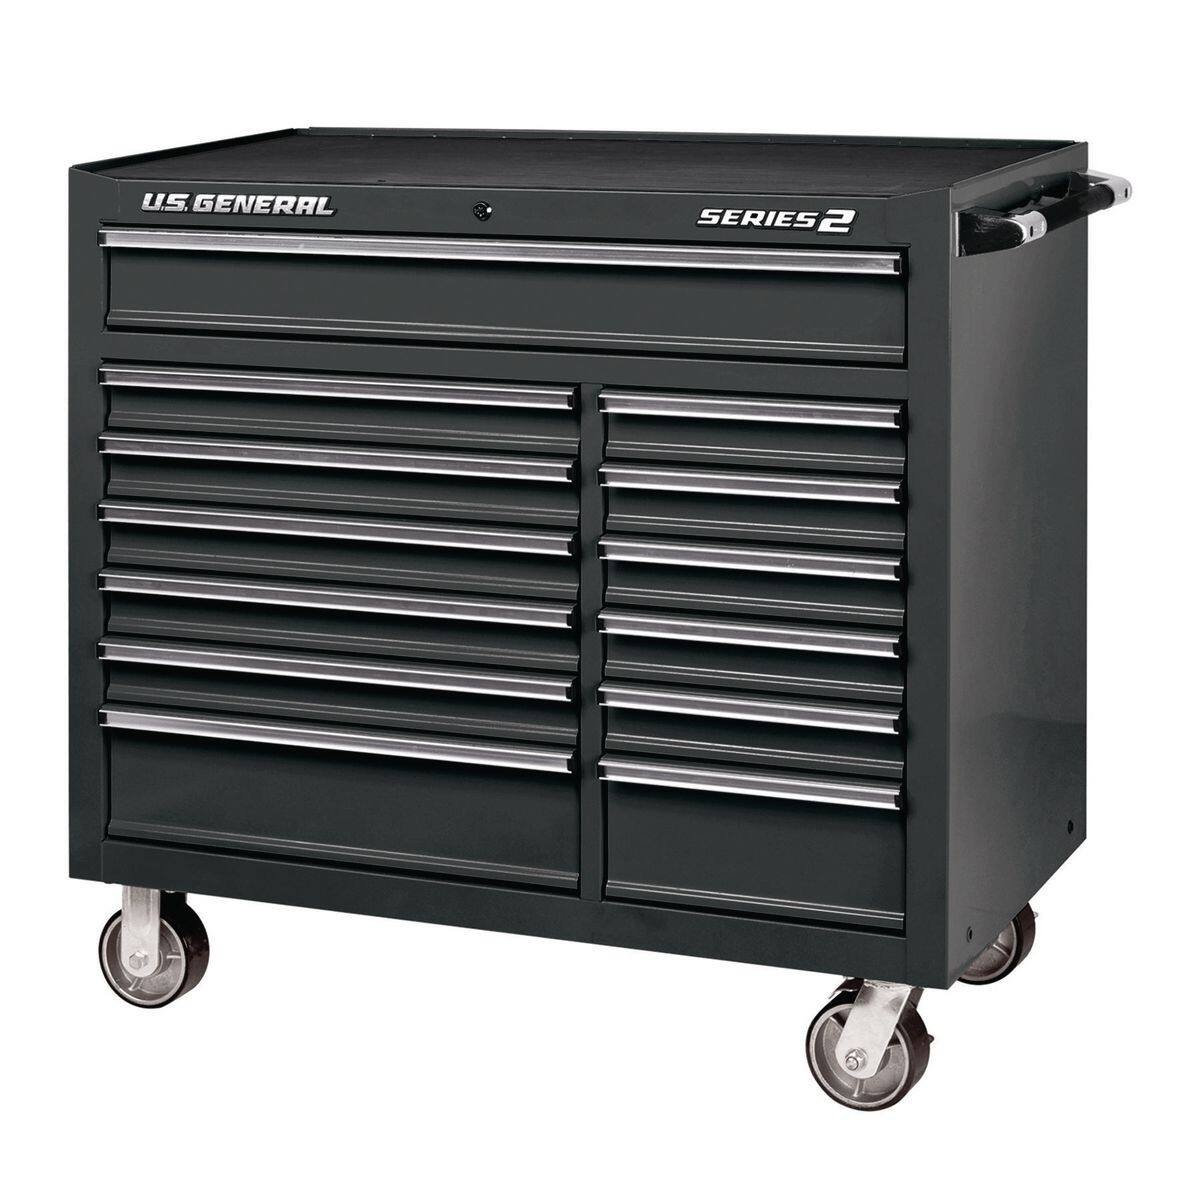 Harbor Freight US General 2 - 44 In. X 22 In. Double Bank Roller Cabinet $449